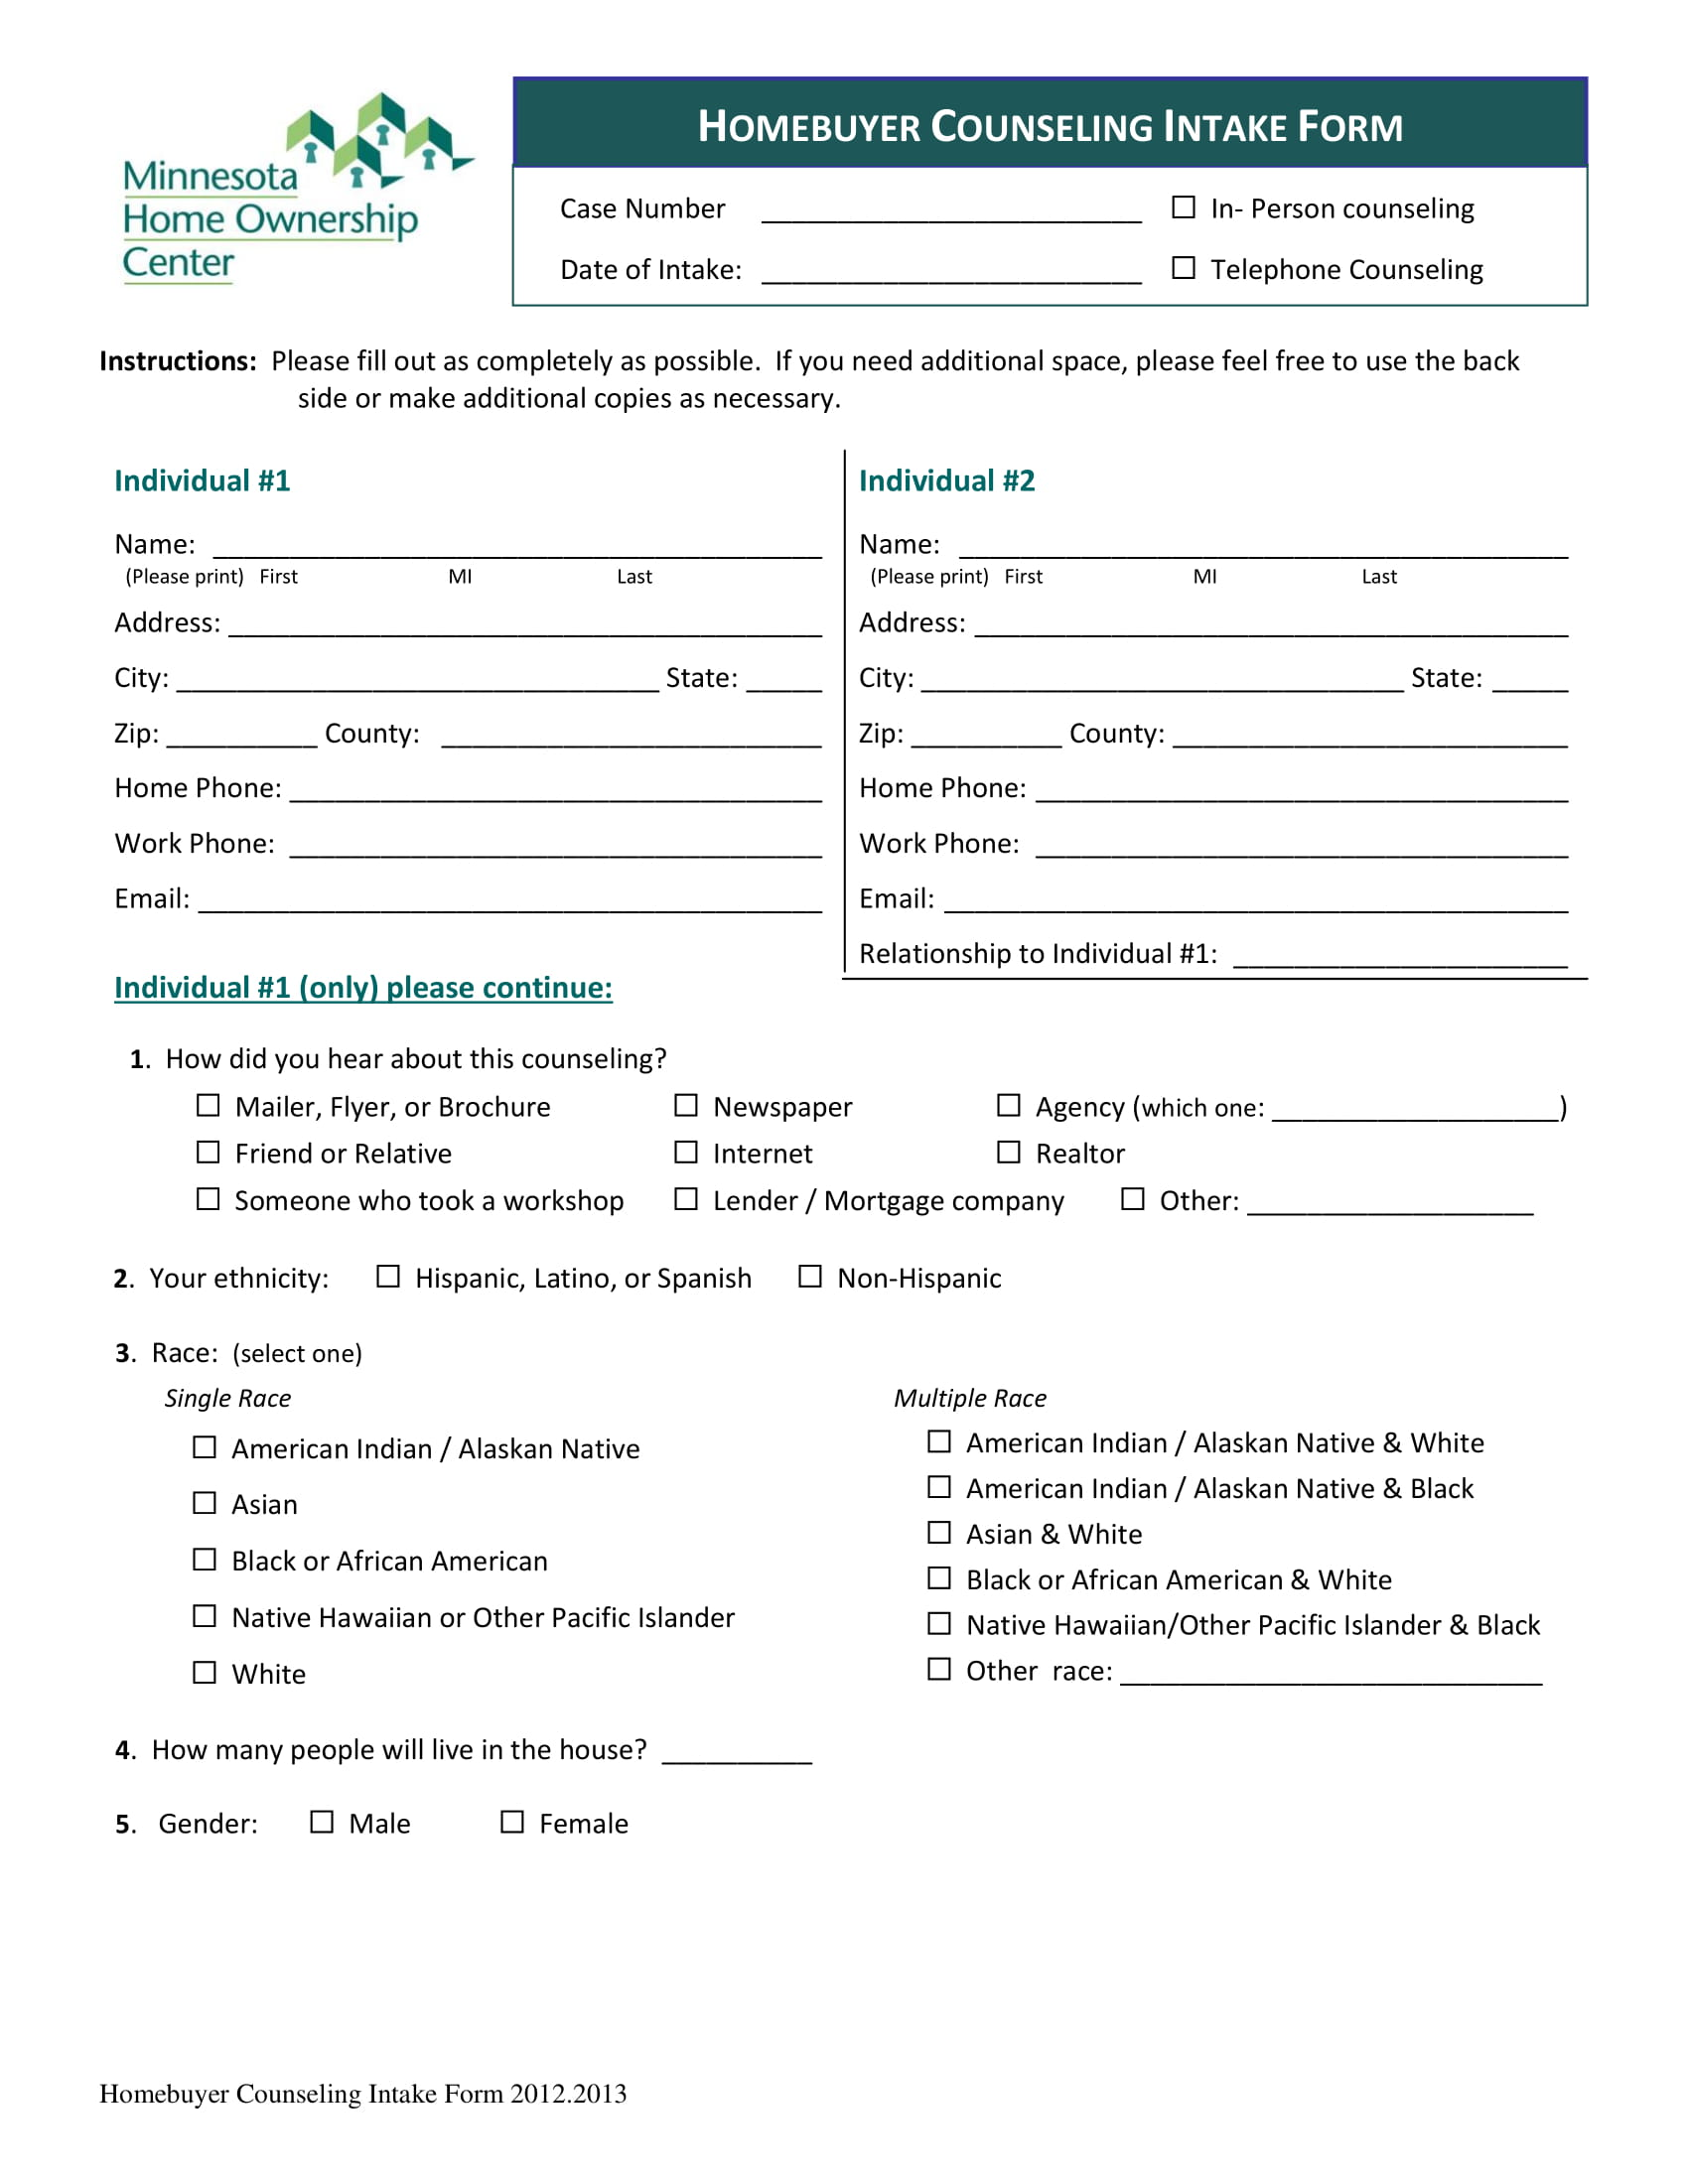 homebuyer counseling intake form 1